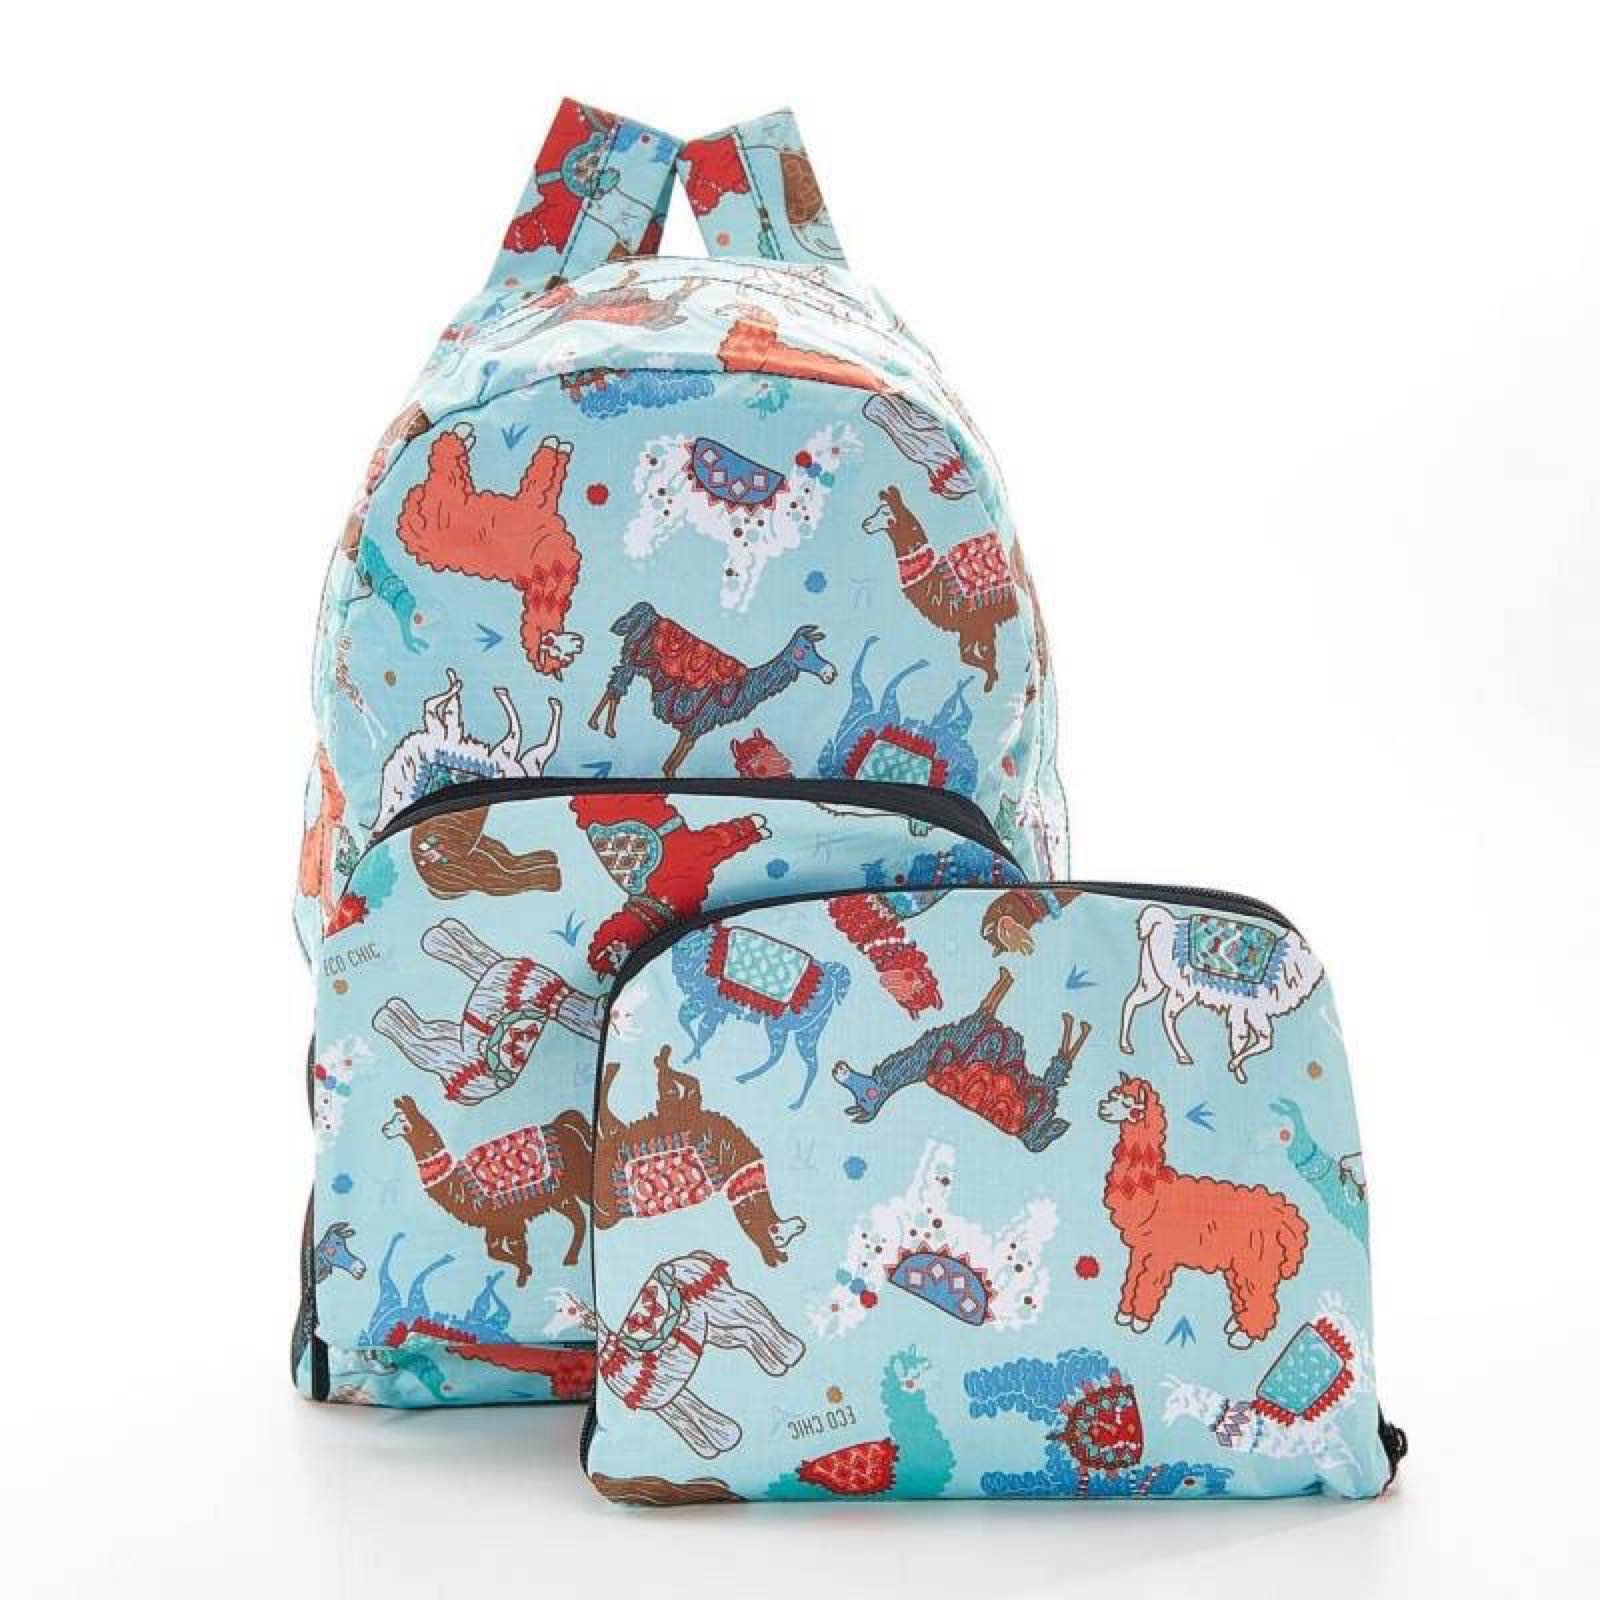 'Alpacas & Llamas' Foldable Backpack